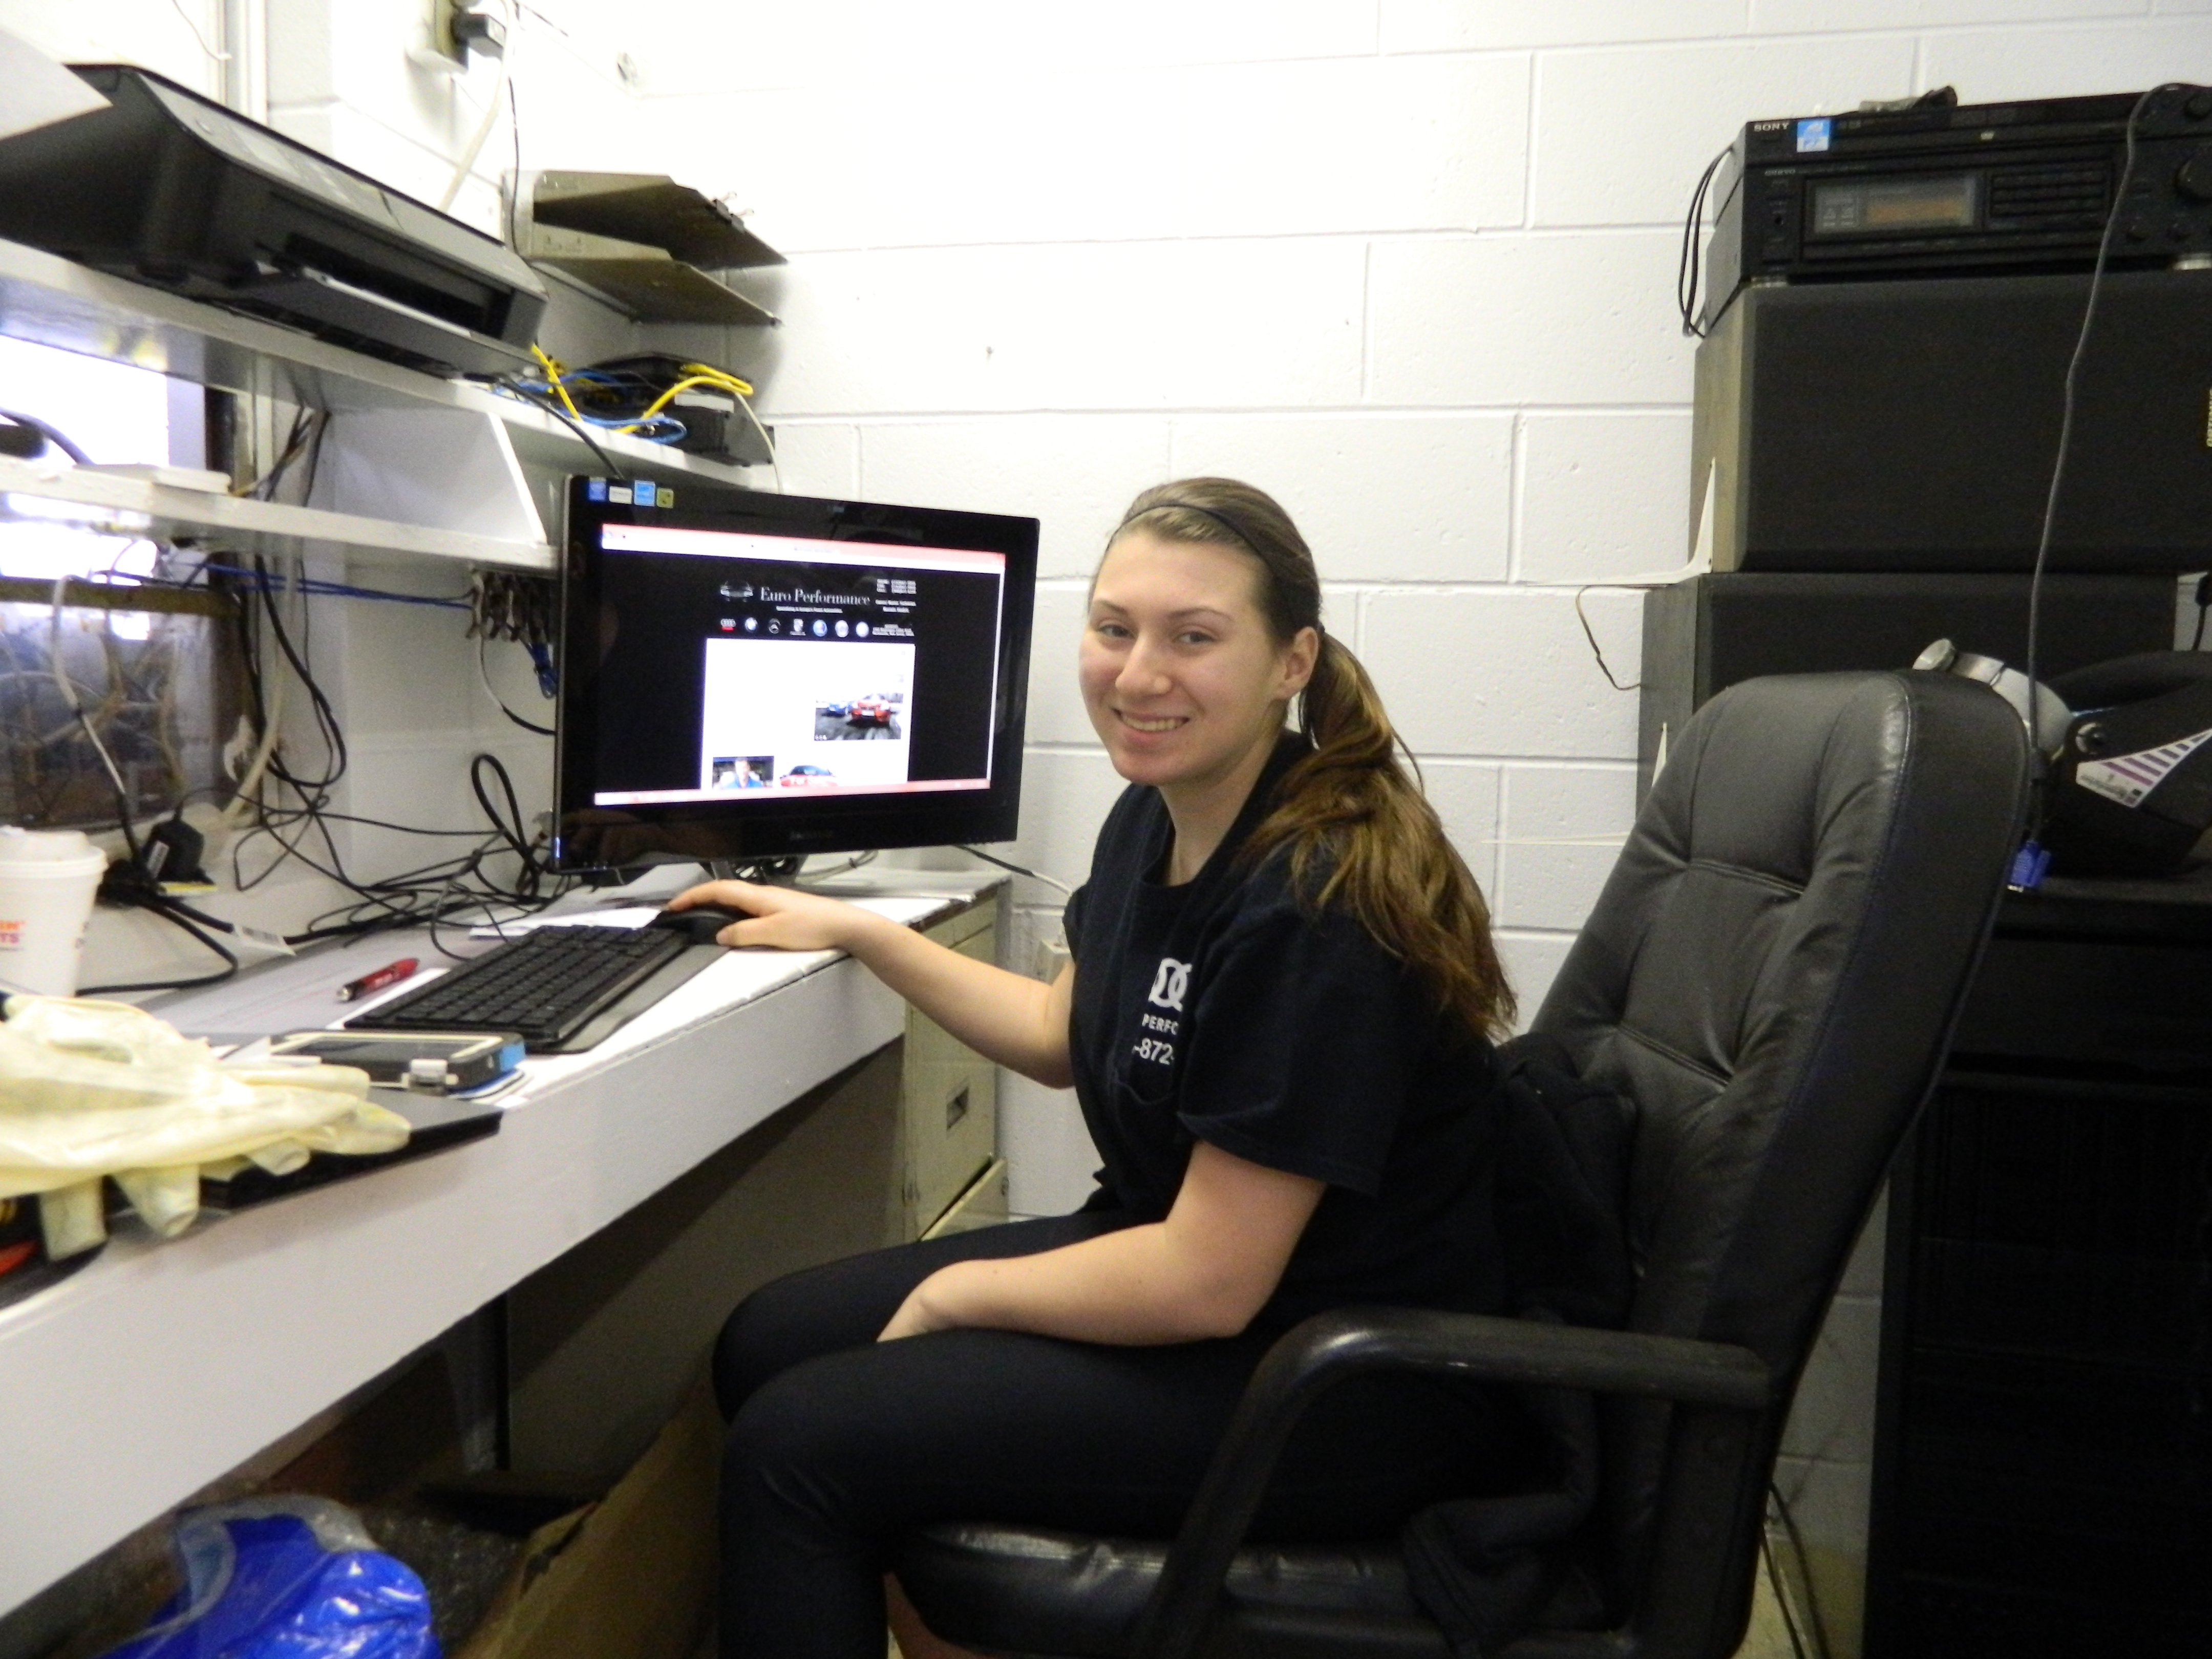 Nermin Hodzic's Daughter Working in The Office at Euro Performance